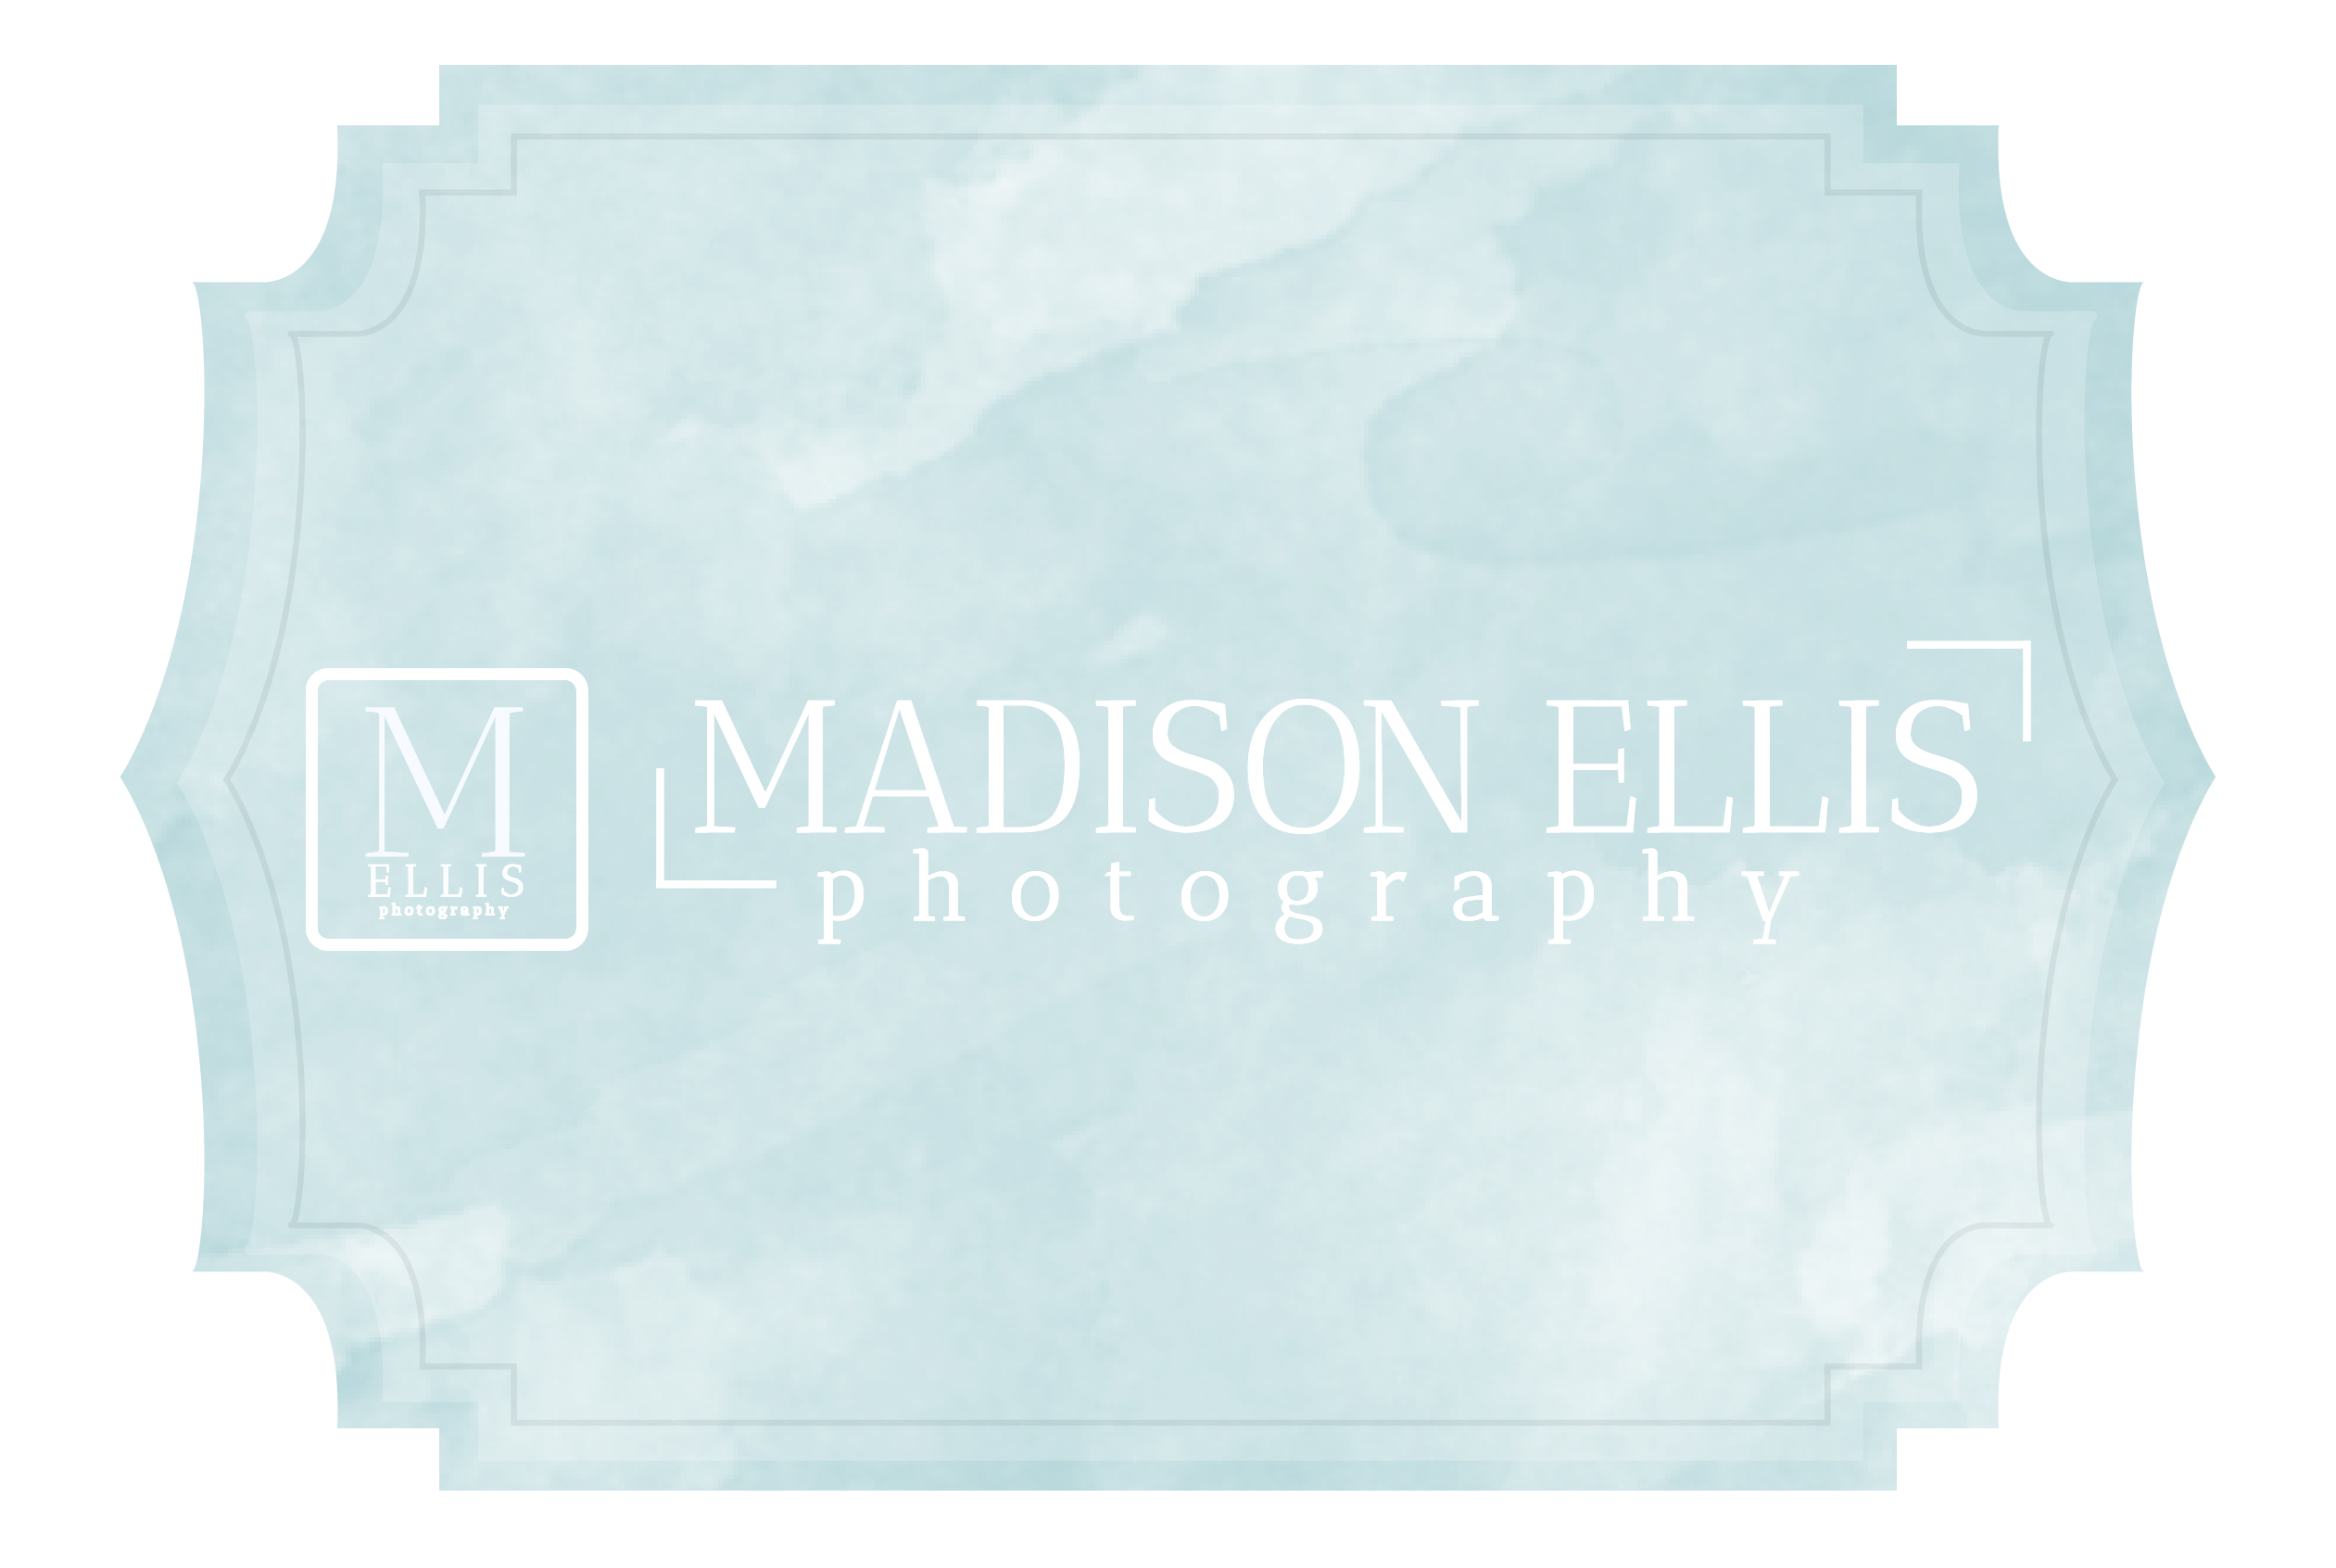 Madison Ellis Photography